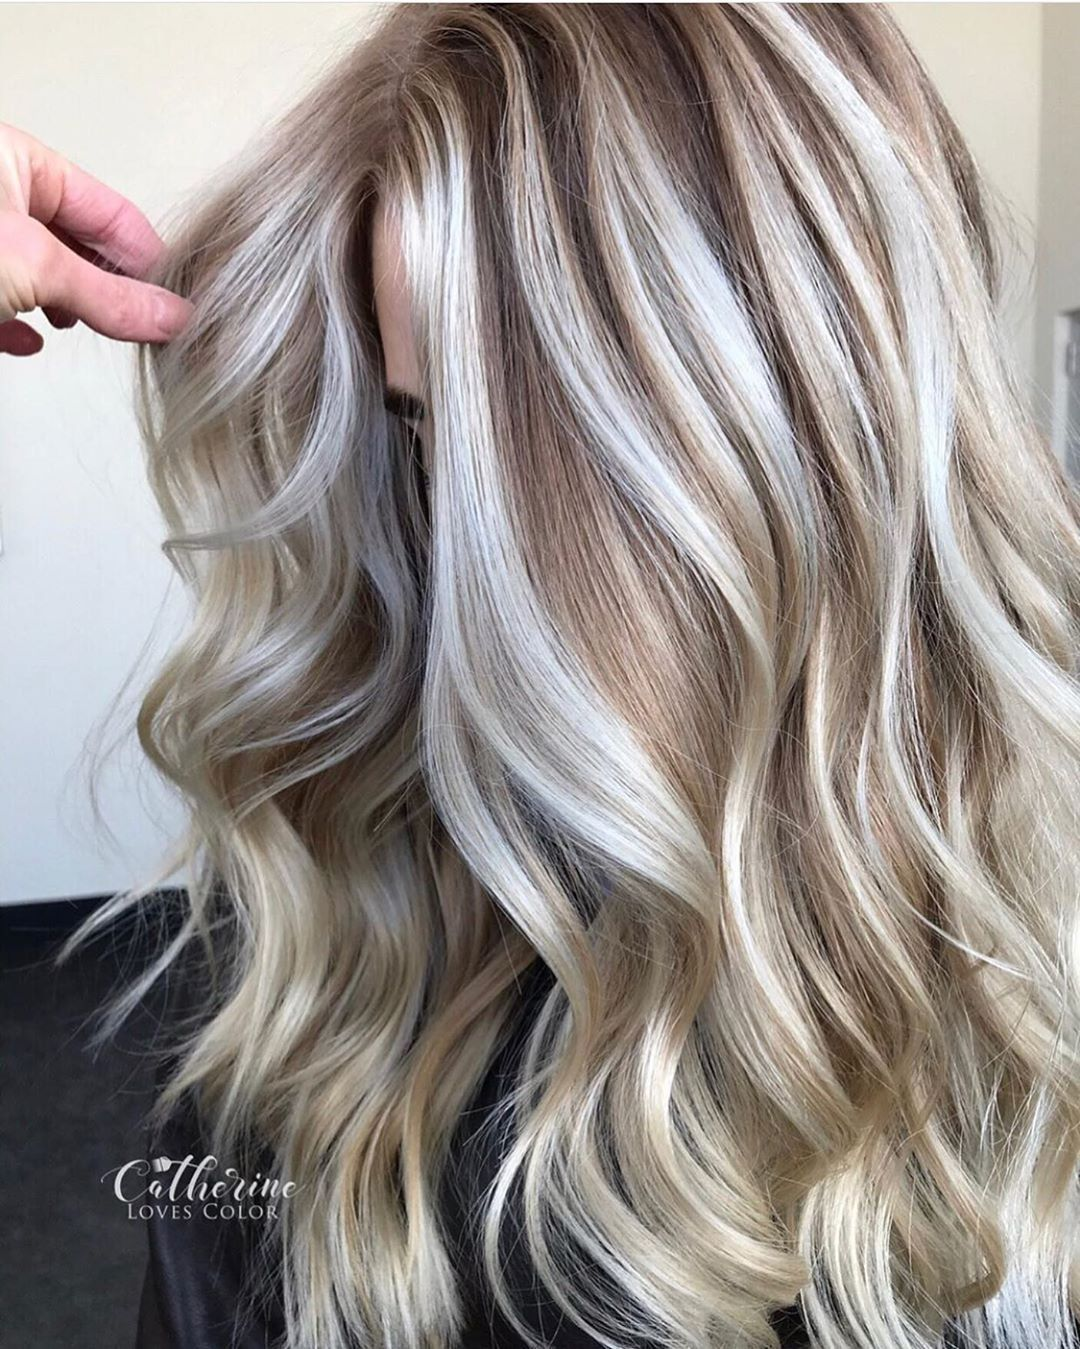 The Best Hair Color Trends And Styles For 2020 Hair Color Trends Styles Suna Ideas In 2020 Cool Hair Color Balayage Hair Hair Color Trends